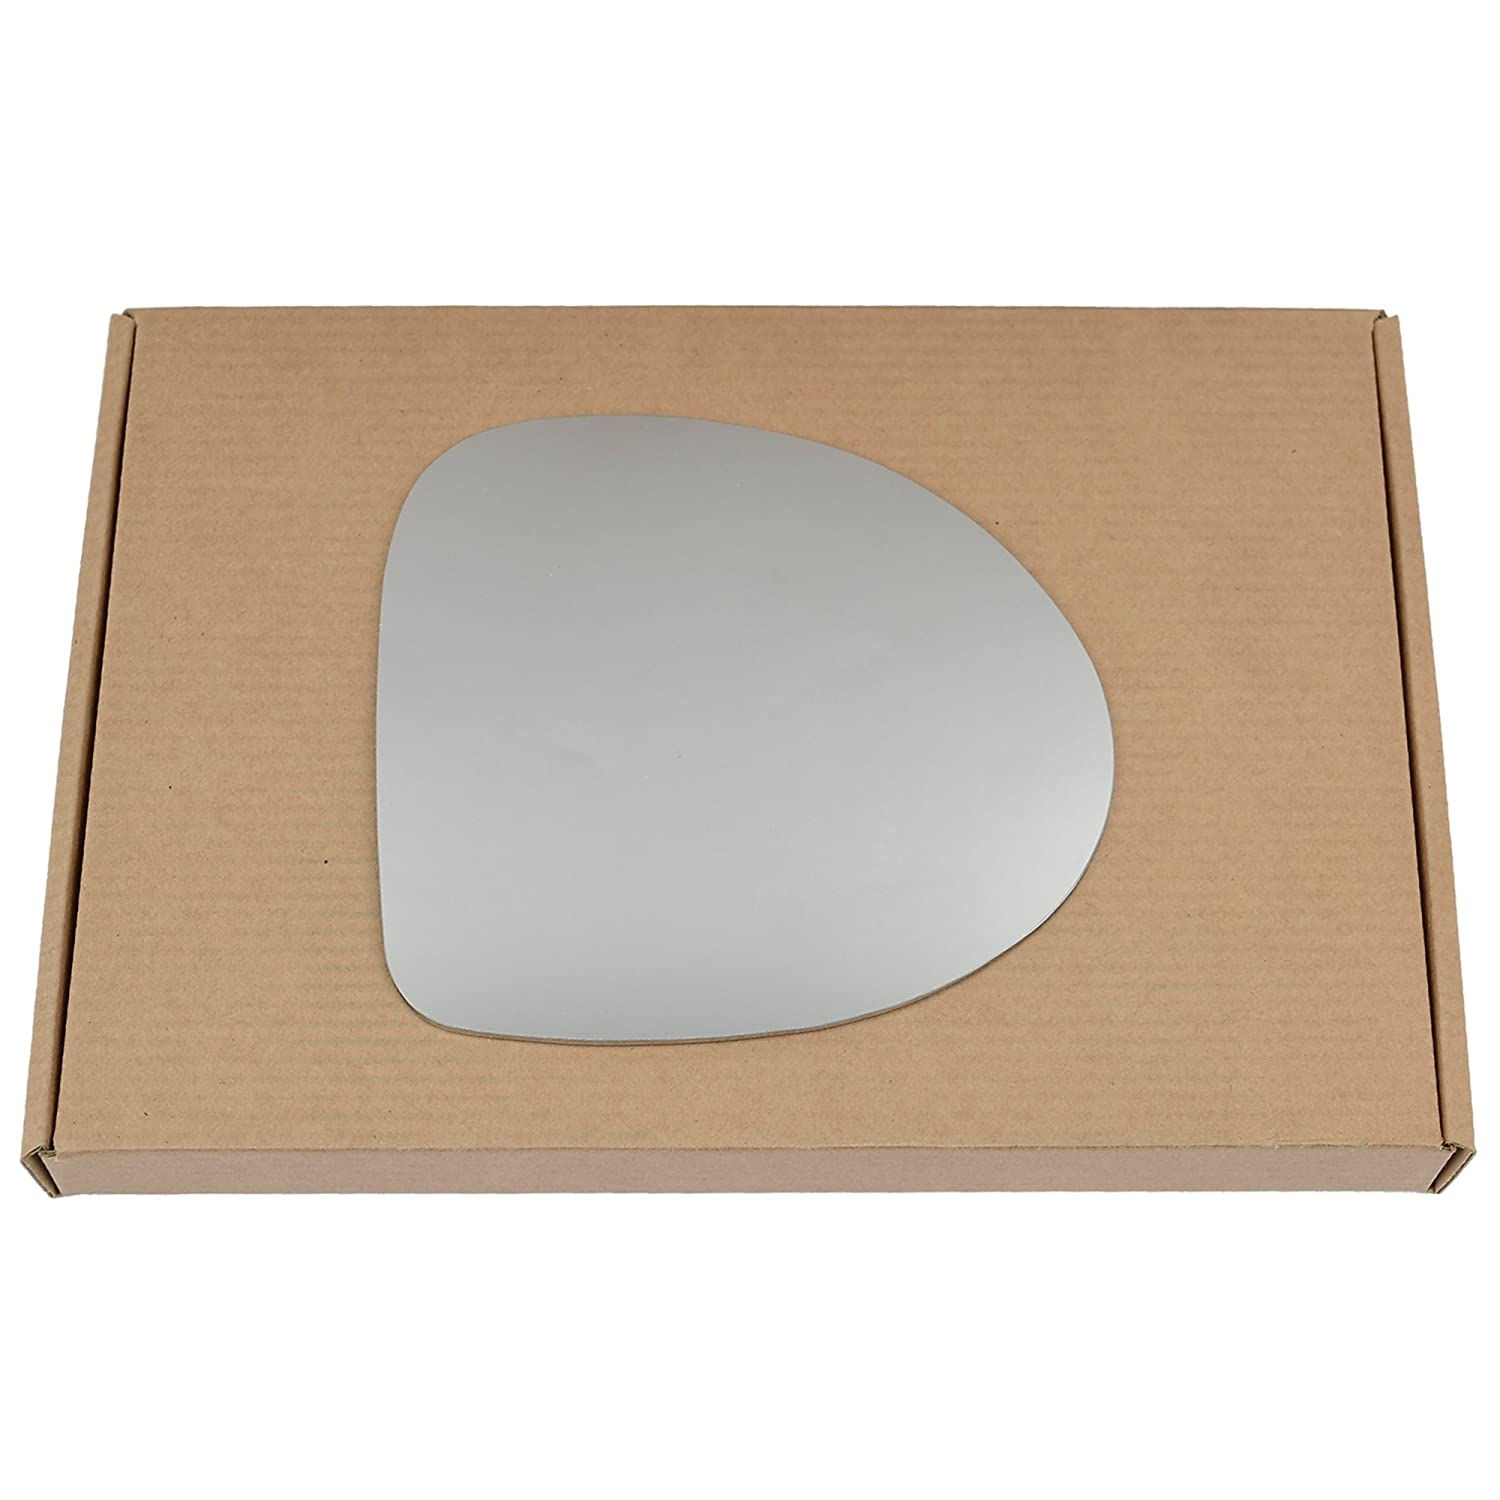 Right driver side Clear Wing mirror glass # ReTwi//h02-2010492//590